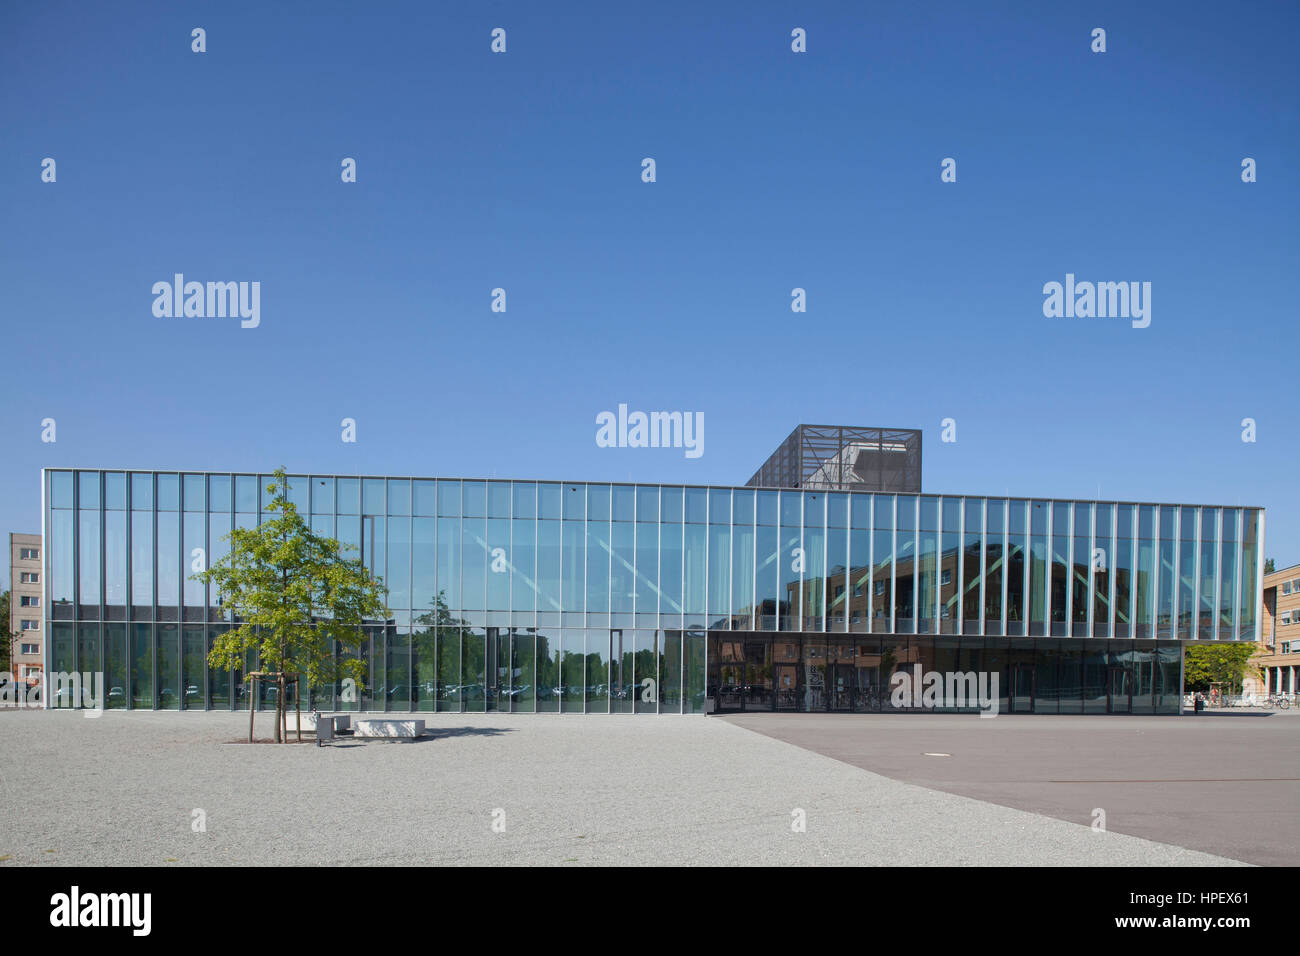 International Office Greifswald Baltic Campus Stock Photos Baltic Campus Stock Images Alamy